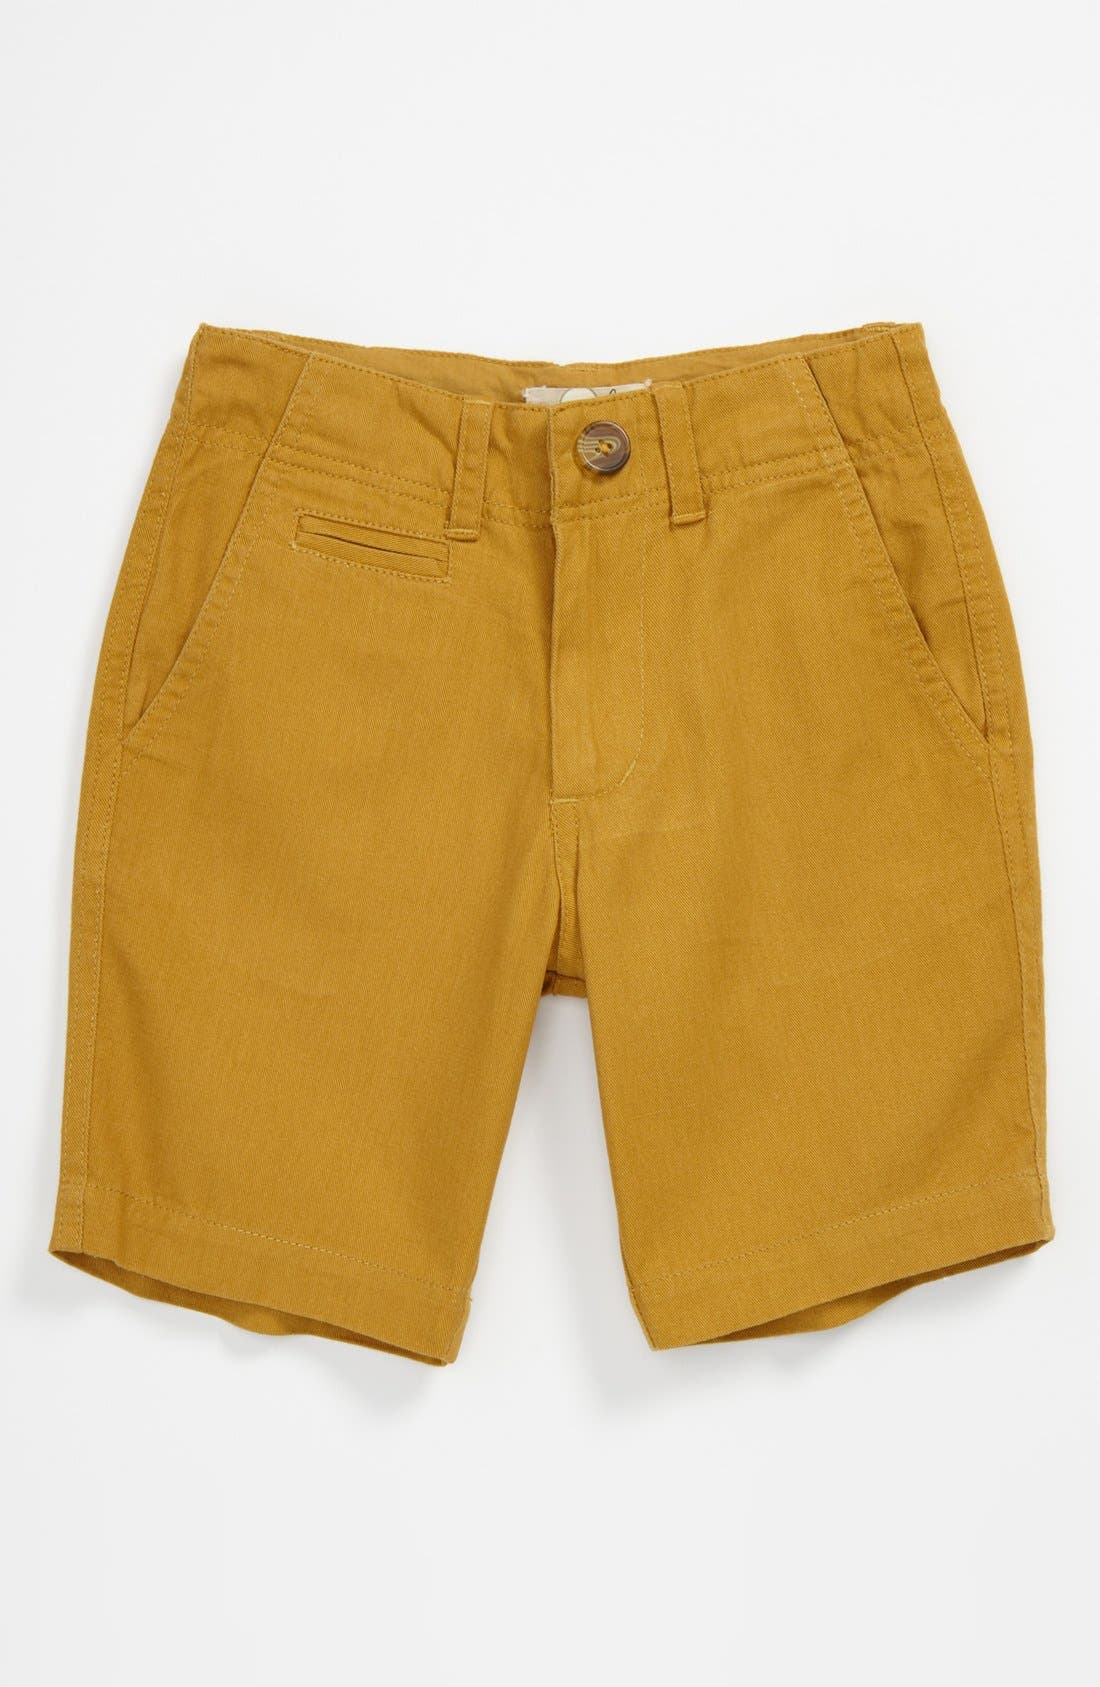 Alternate Image 1 Selected - Peek 'Richmond' Roll Cuff Shorts (Toddler, Little Boys & Big Boys)